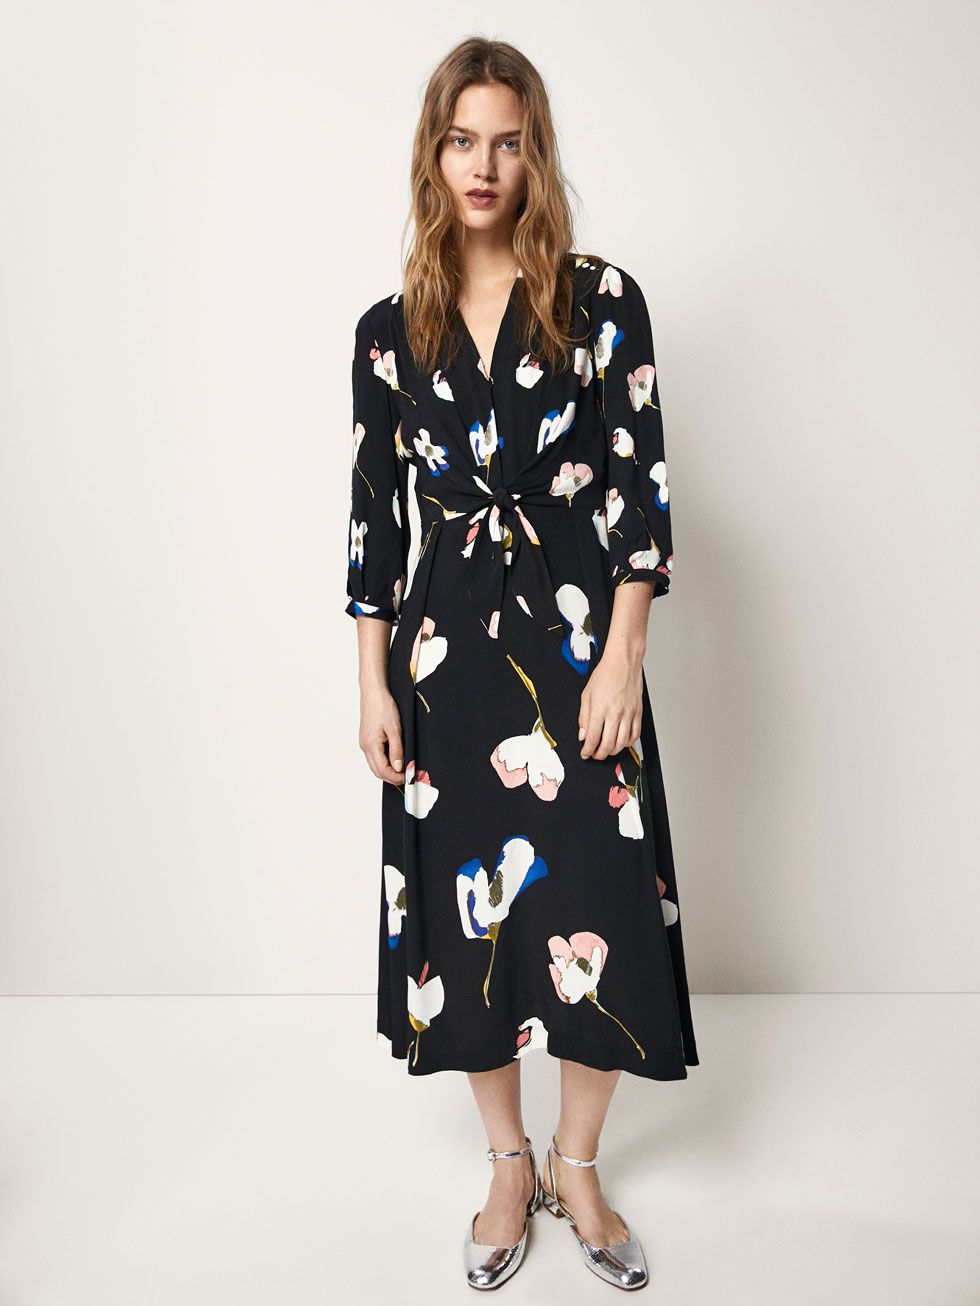 37c00e18f82 FLORAL PRINT DRESS WITH KNOT DETAIL - Women - Massimo Dutti Упаковка Платья